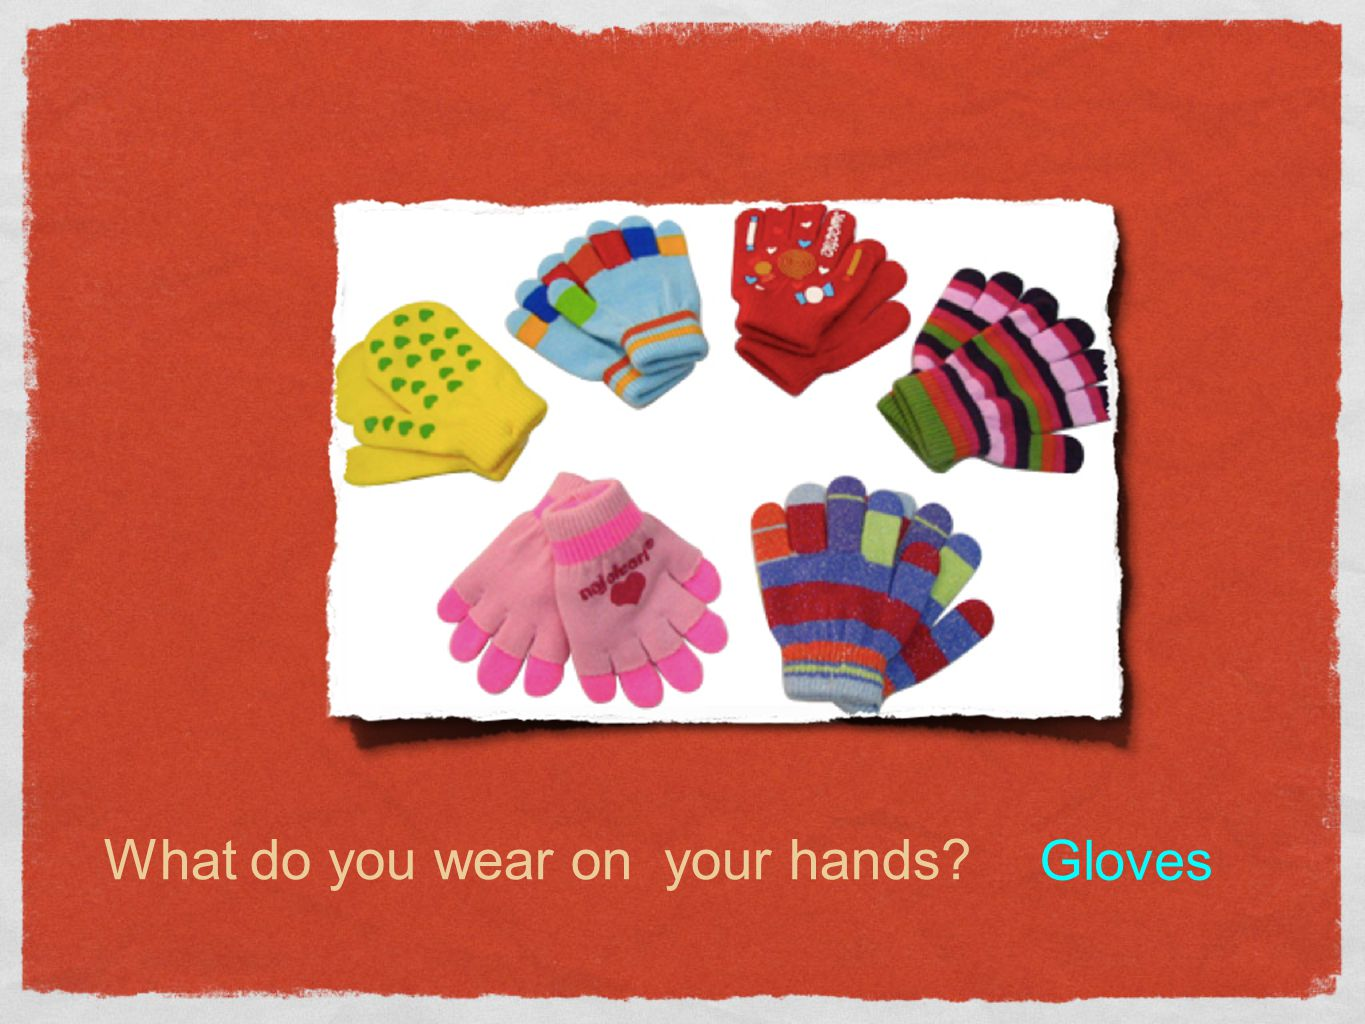 What do you wear on your hands? Gloves